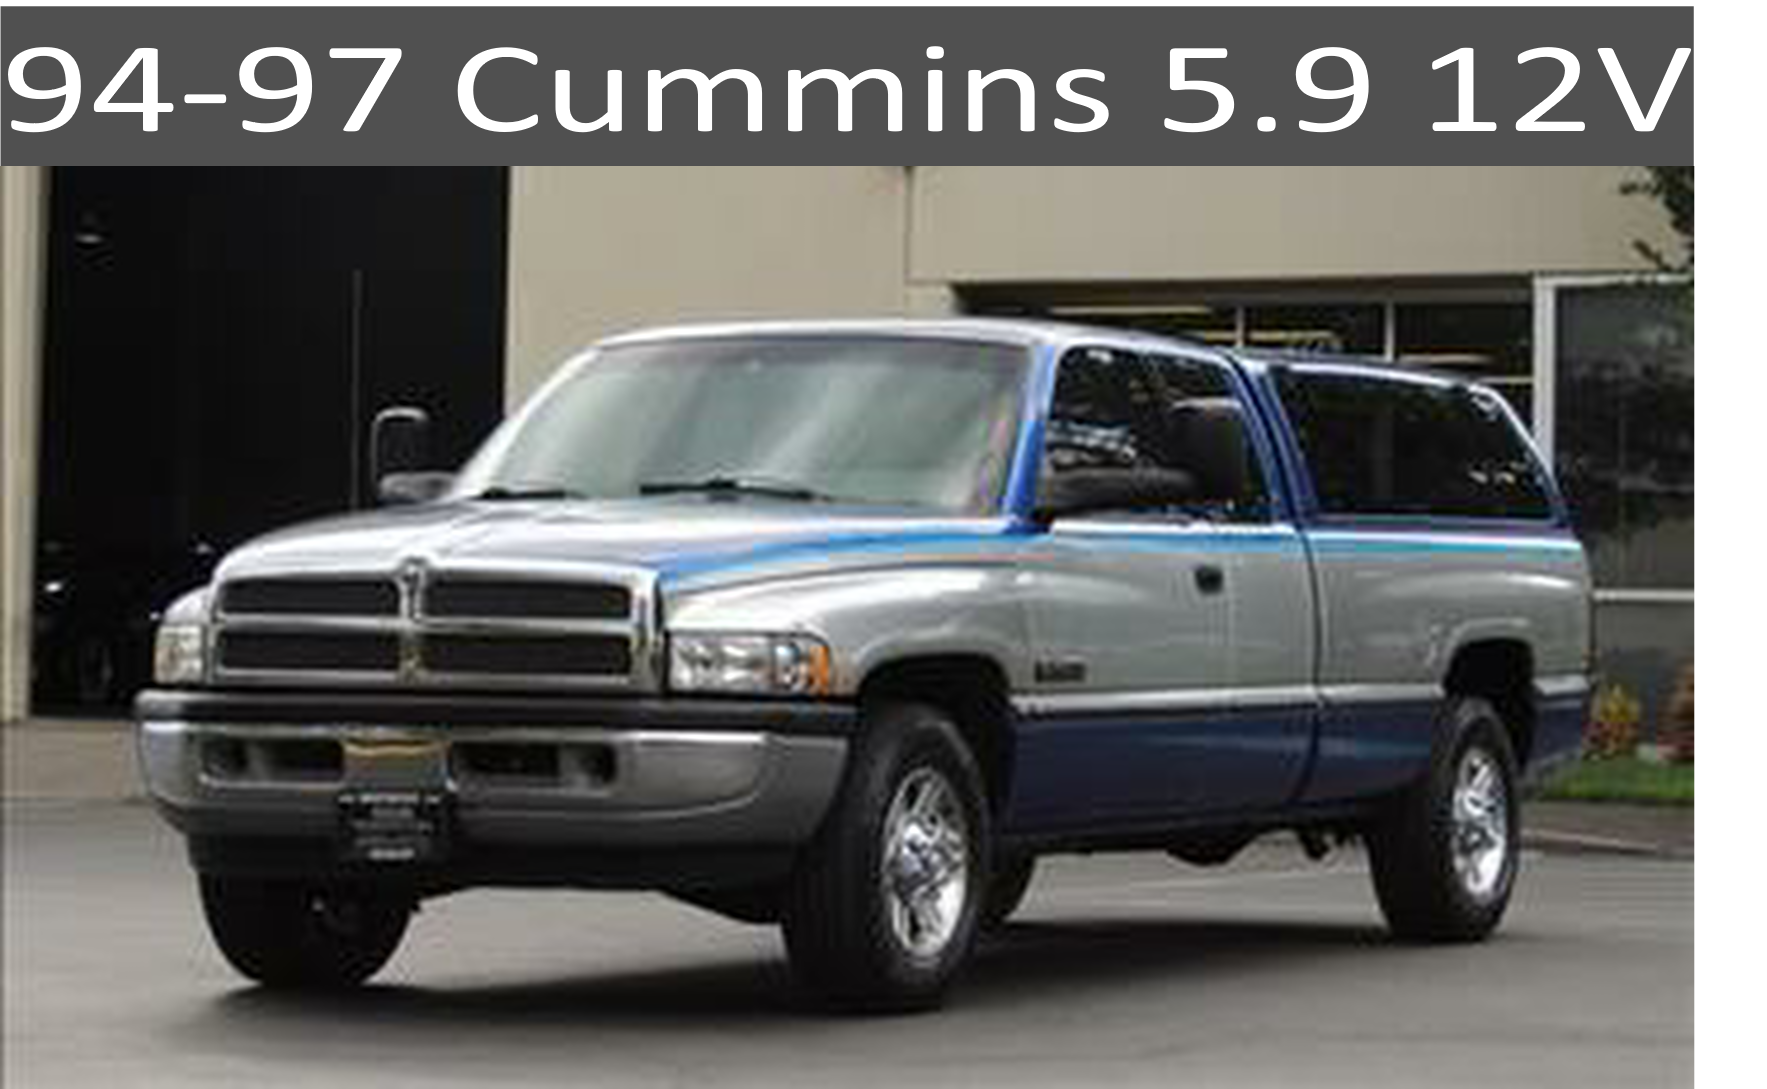 94-97 Dodge Cummins 5.9 Parts